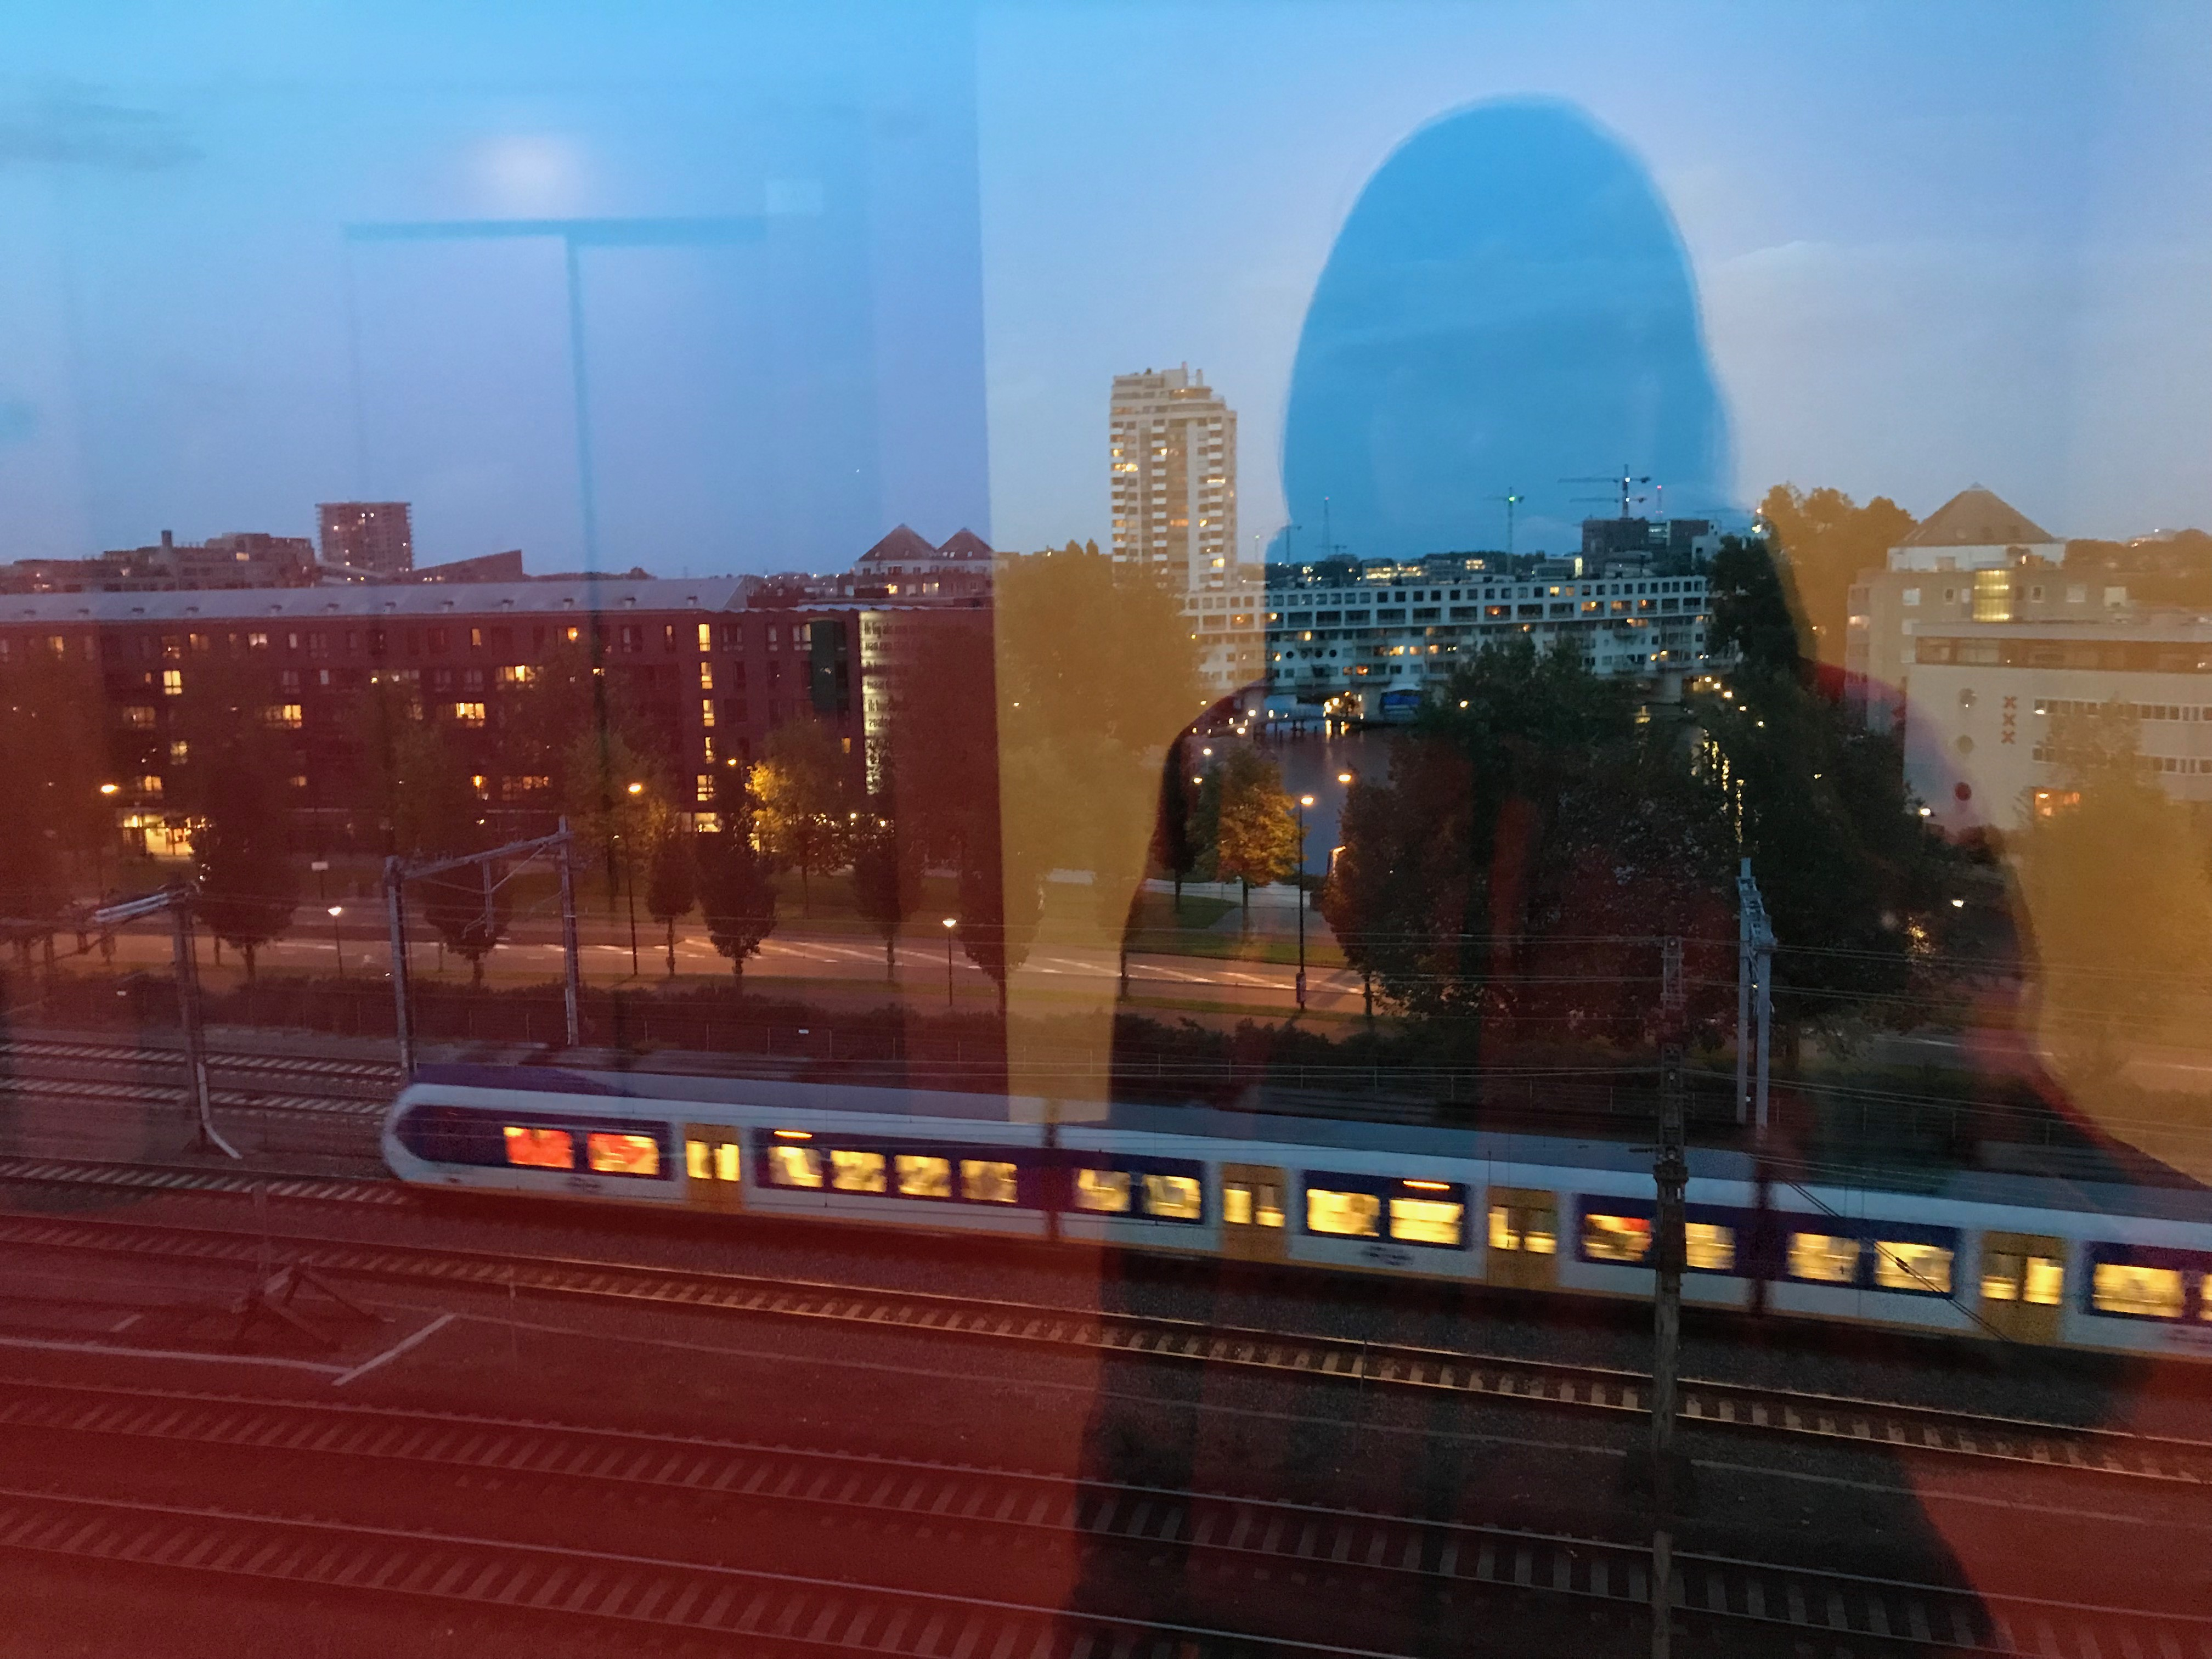 My reflections on Amsterdam.